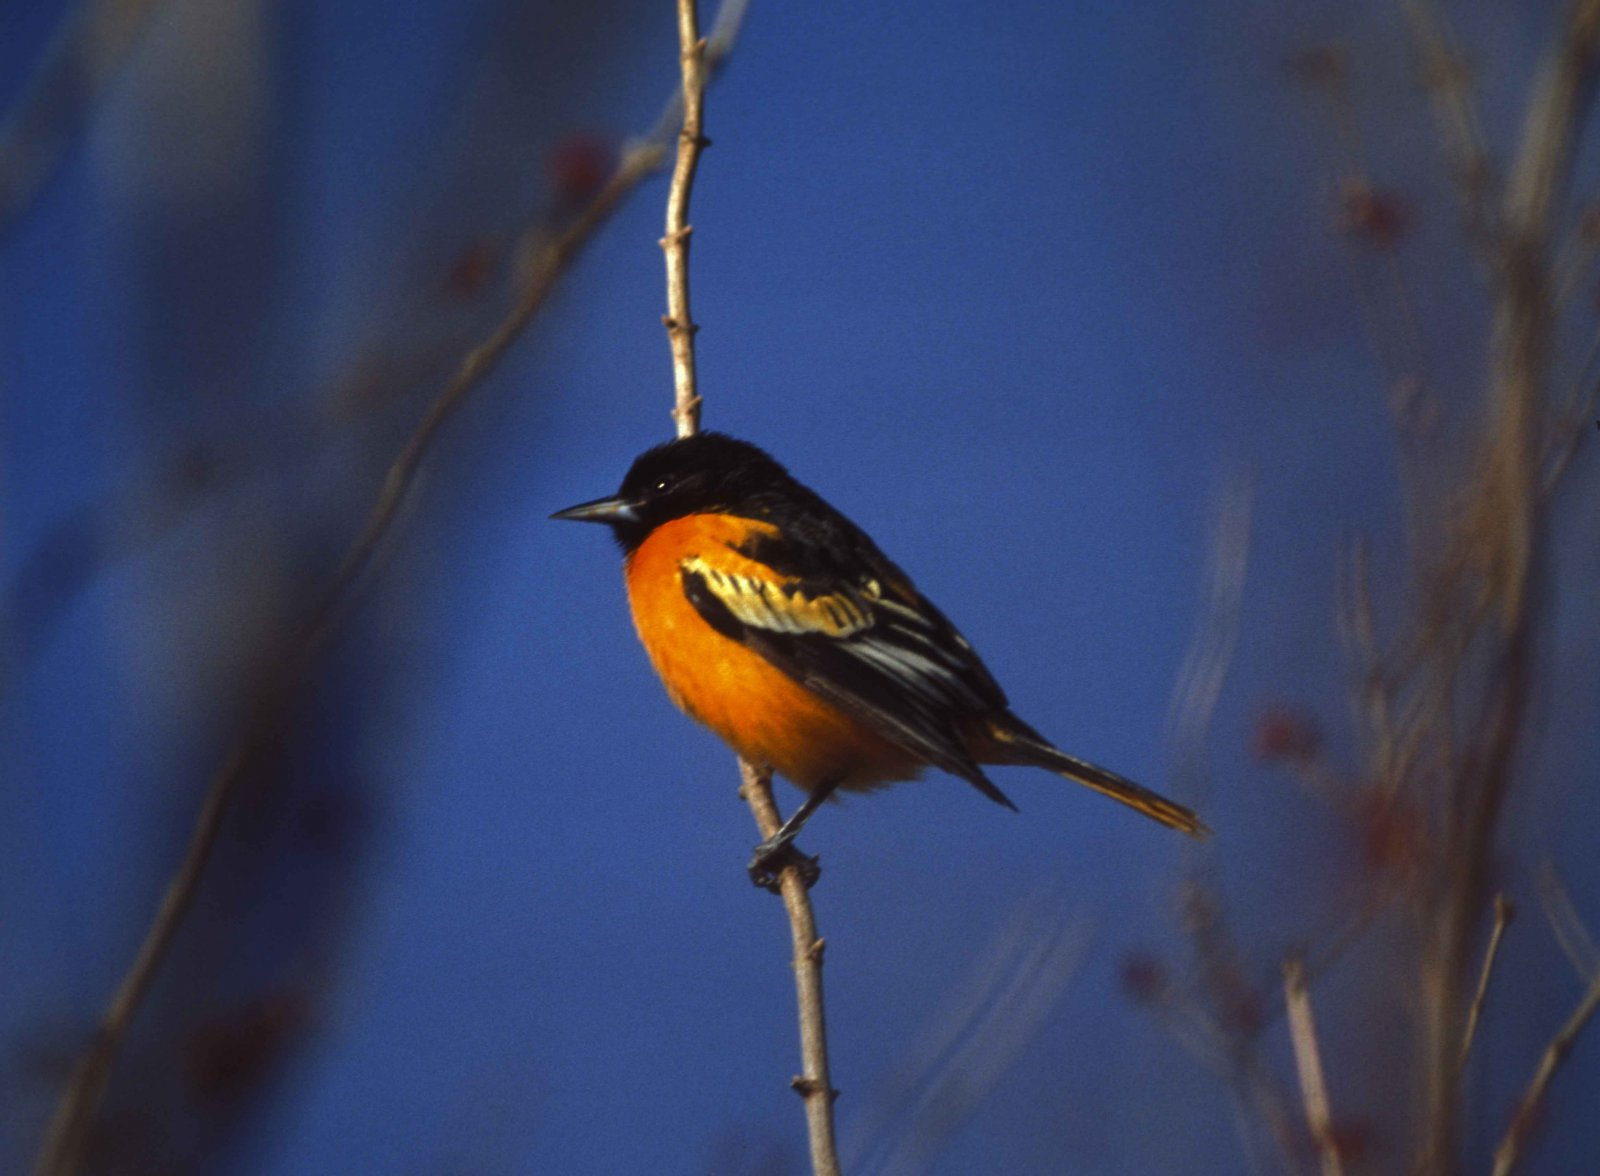 The Baltimore oriole will have a hard time making Baltimore its home in the future